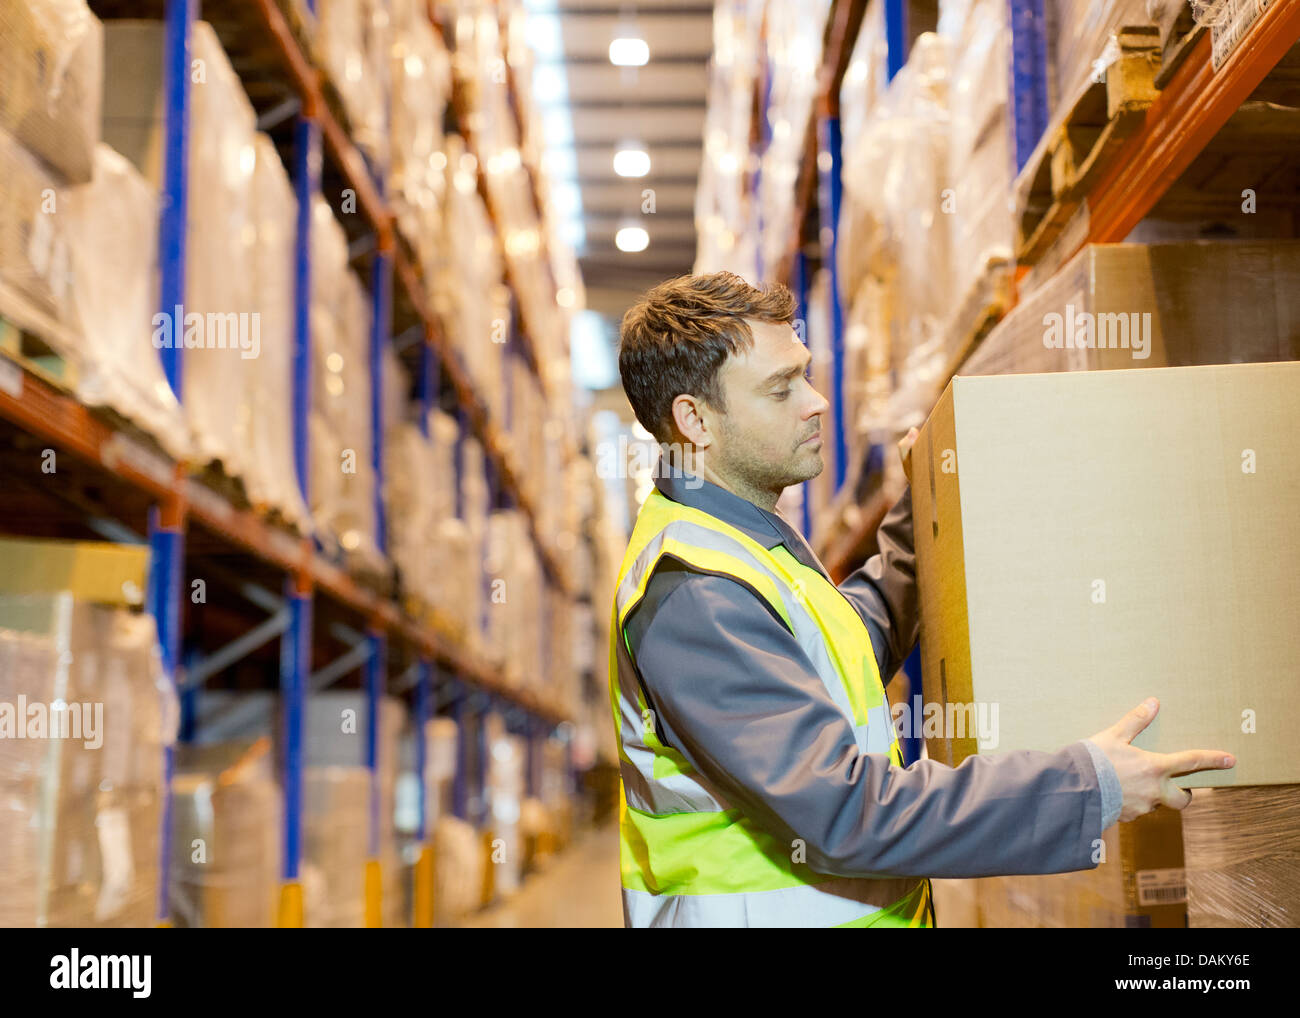 Worker stacking boxes in warehouse - Stock Image